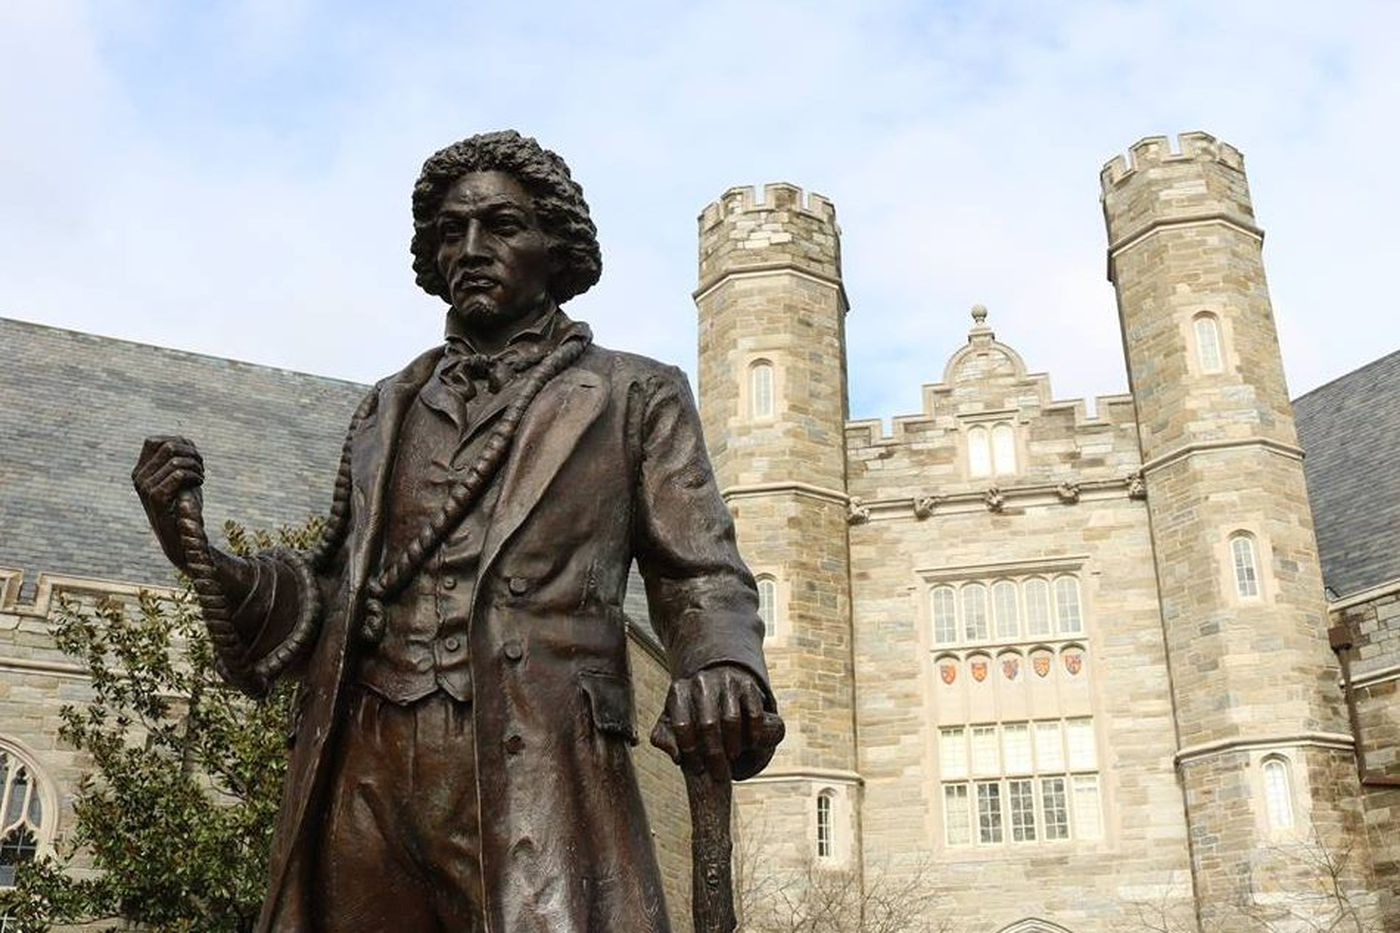 West Chester U. to host lecture series on Frederick Douglass, courtesy of borough's first African American mayor